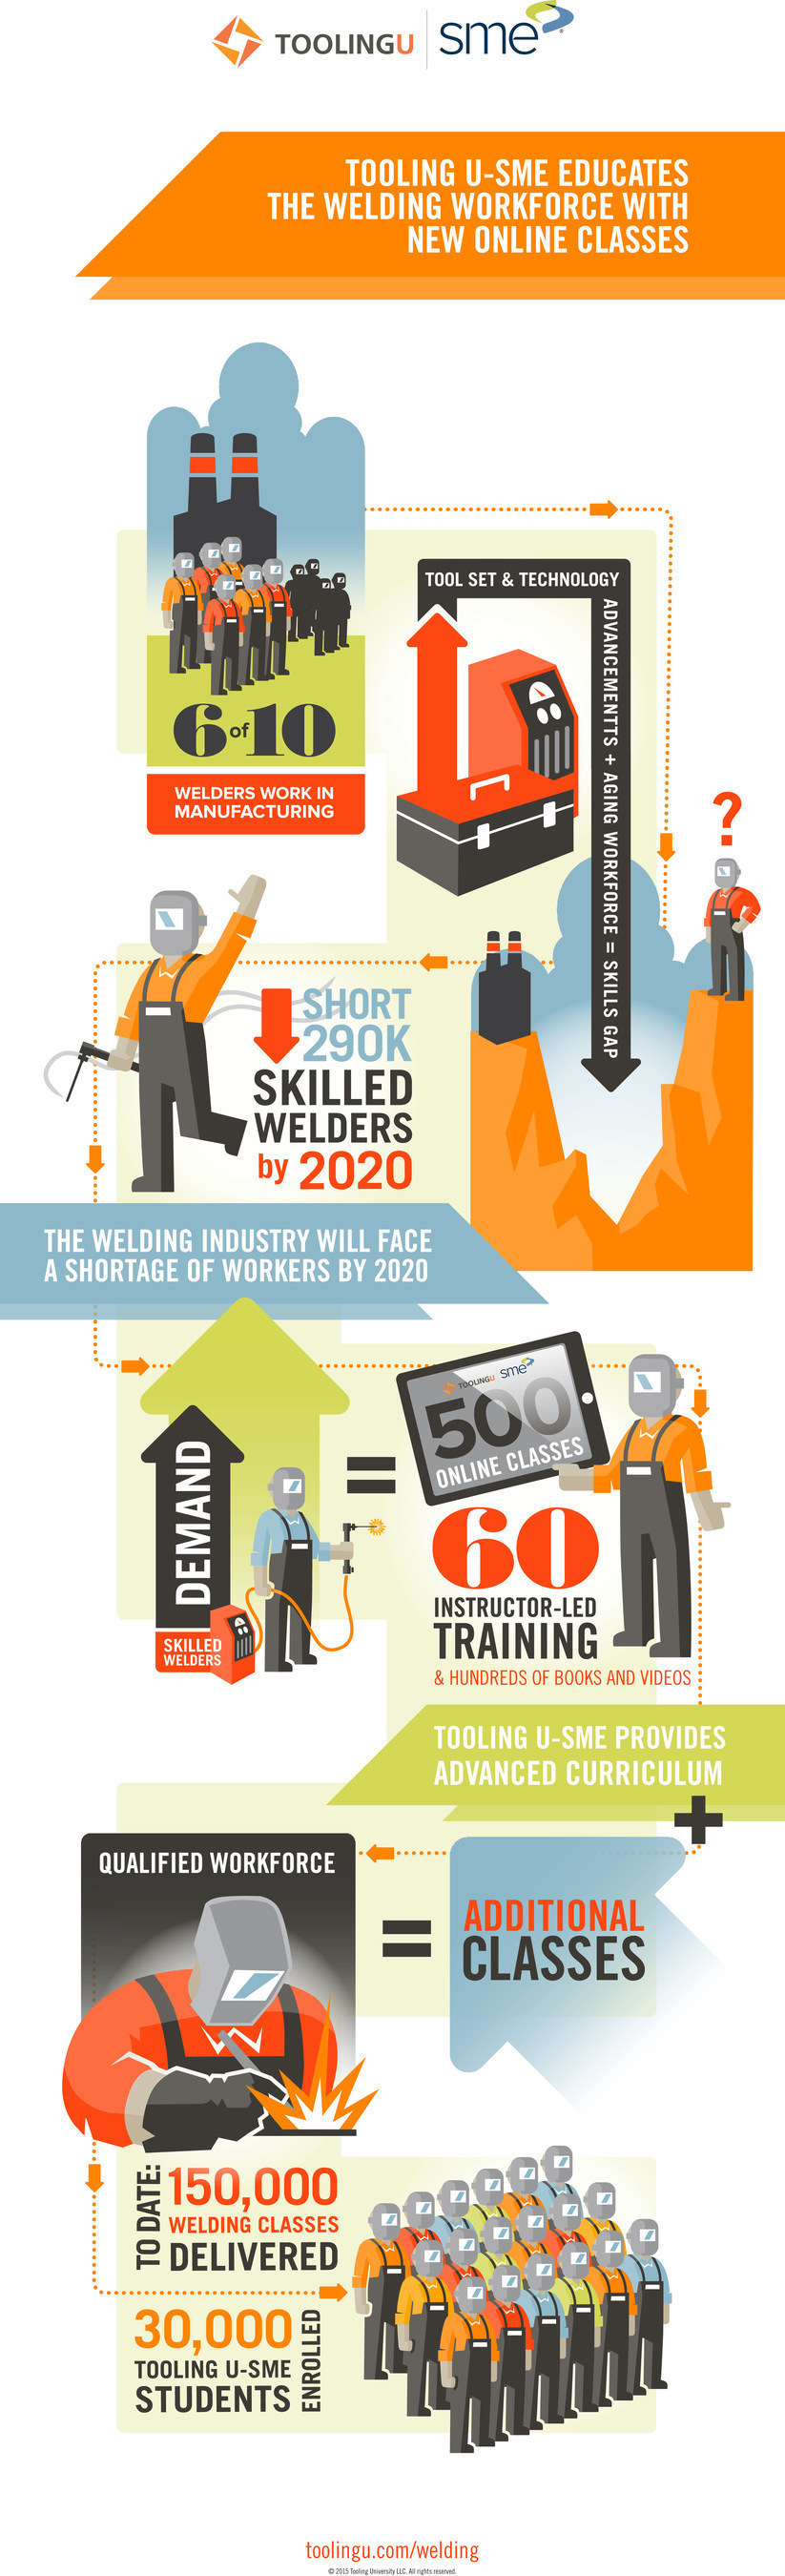 An overview of the welding industry's skills gap from Tooling U-SME